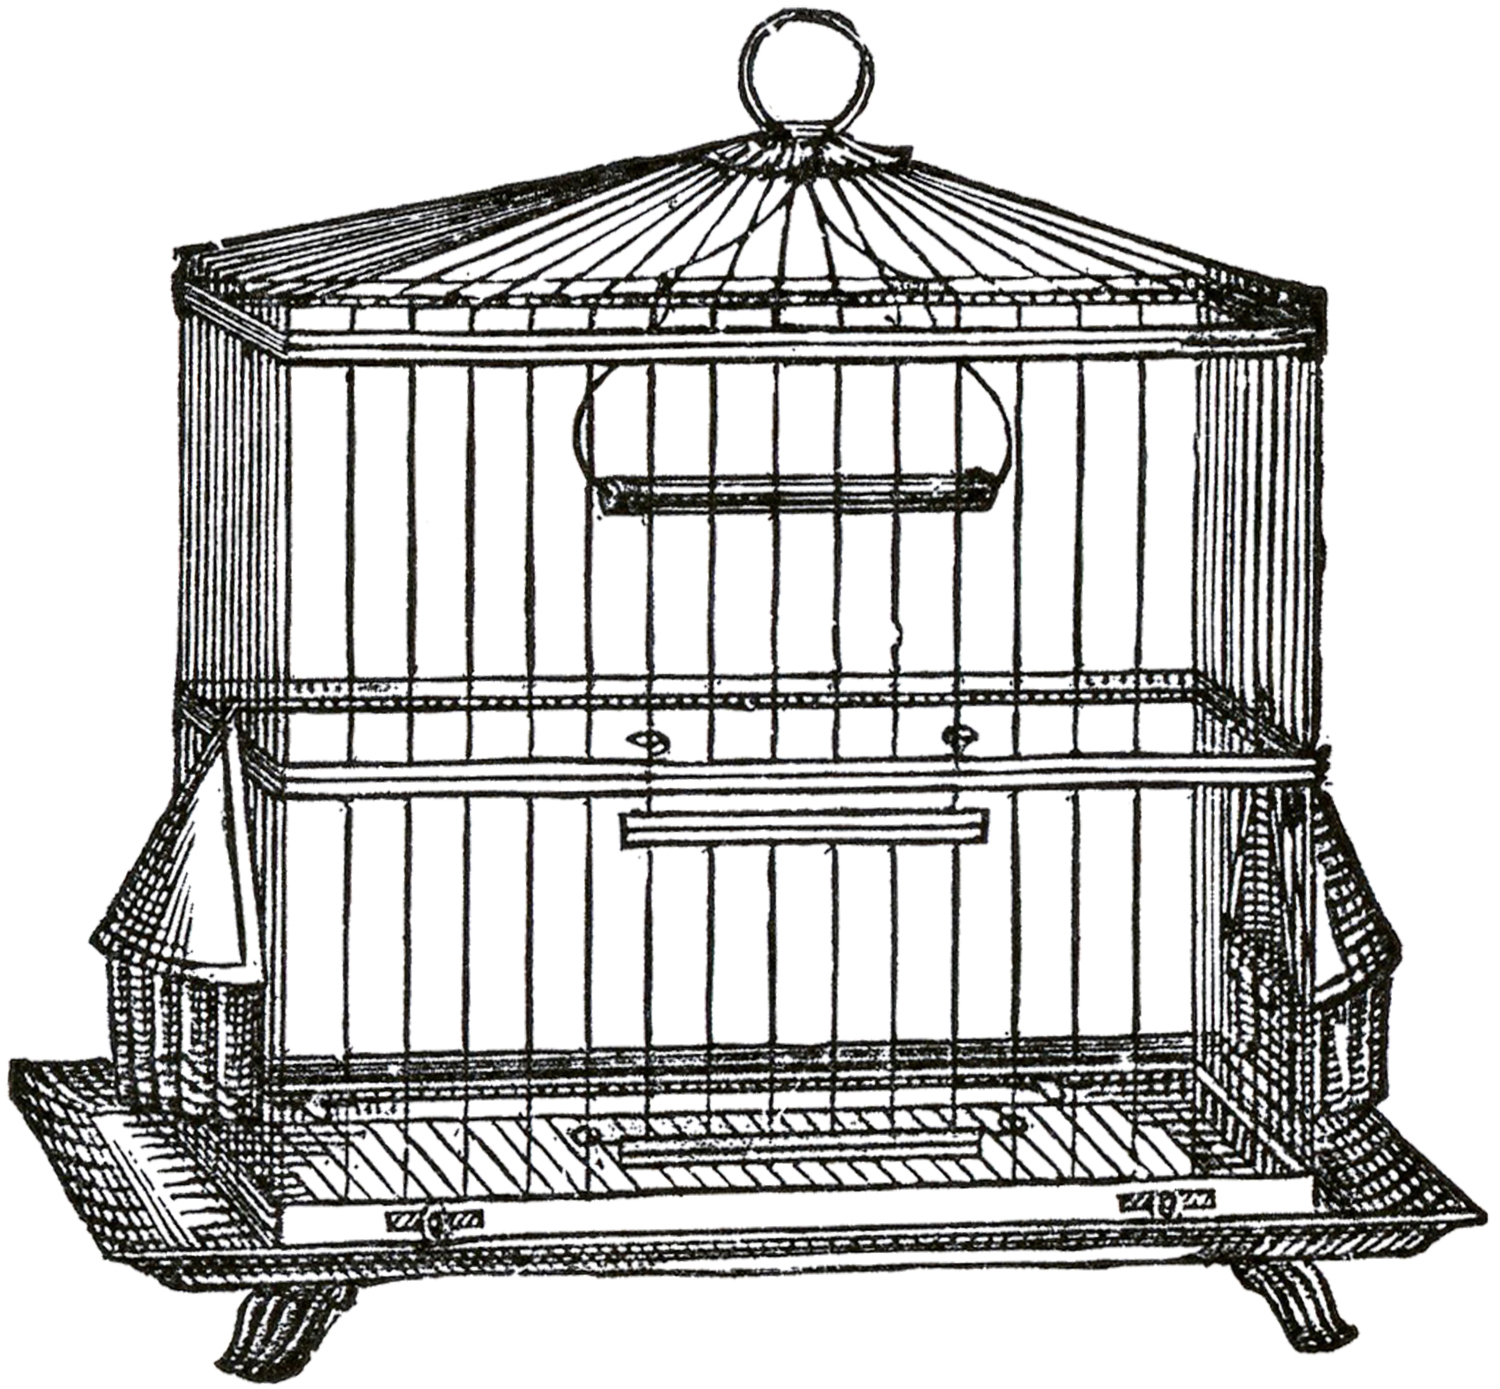 Cage clipart black and white. Vintage wire bird image